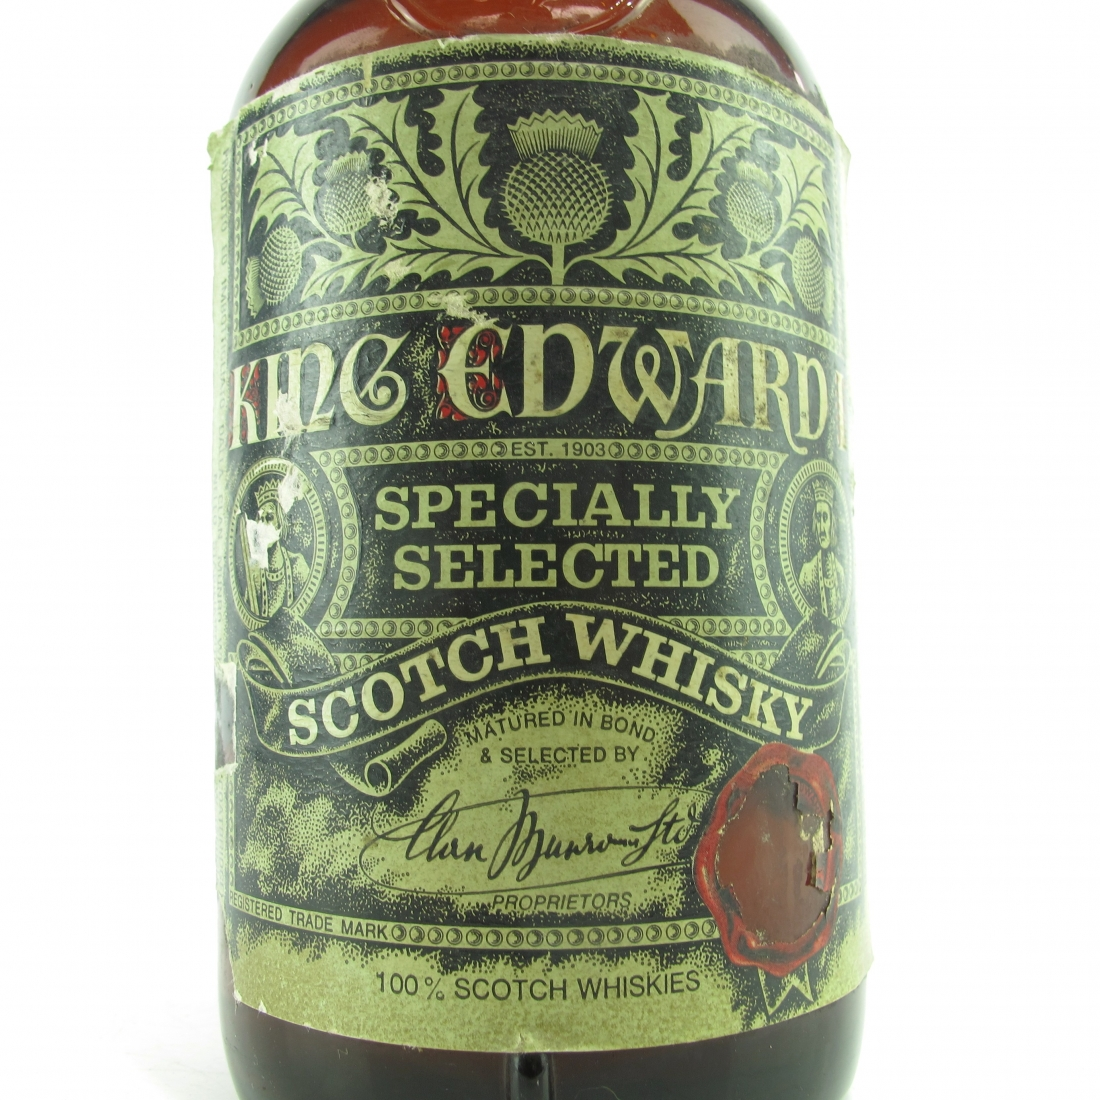 King Edward Specially Selected 1960s